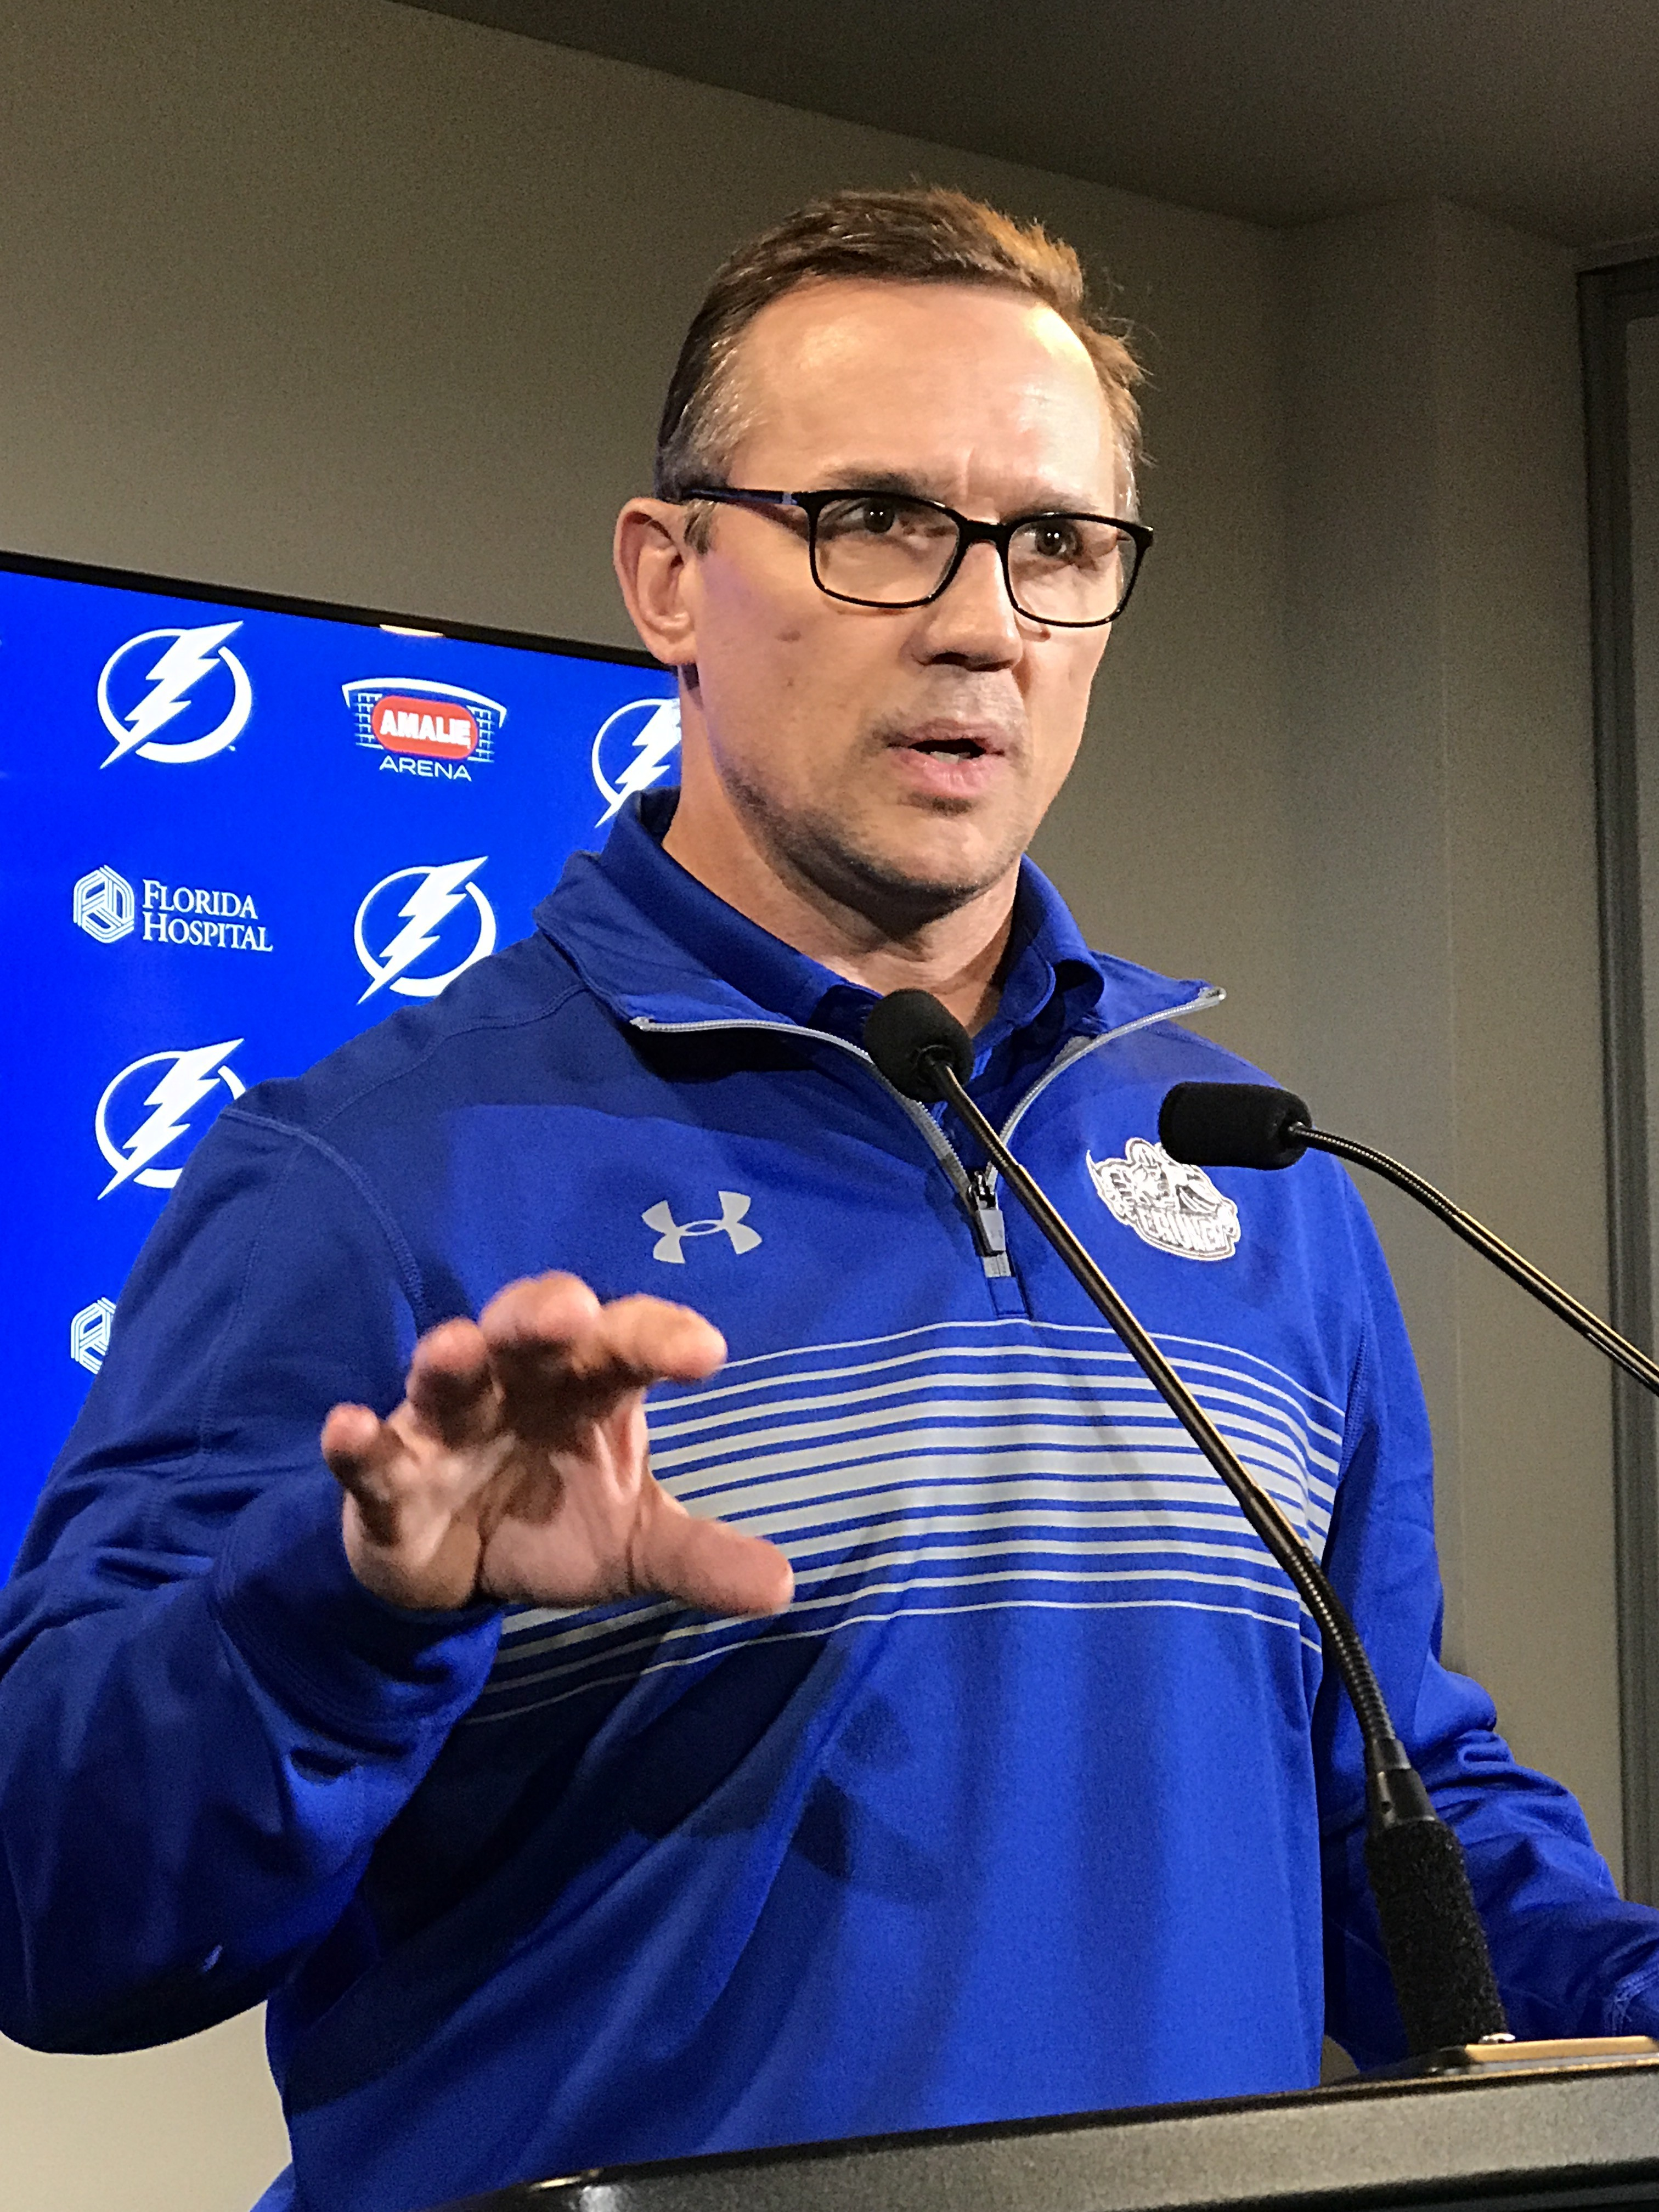 Yzerman has tried to beef up the Bolts' defense.